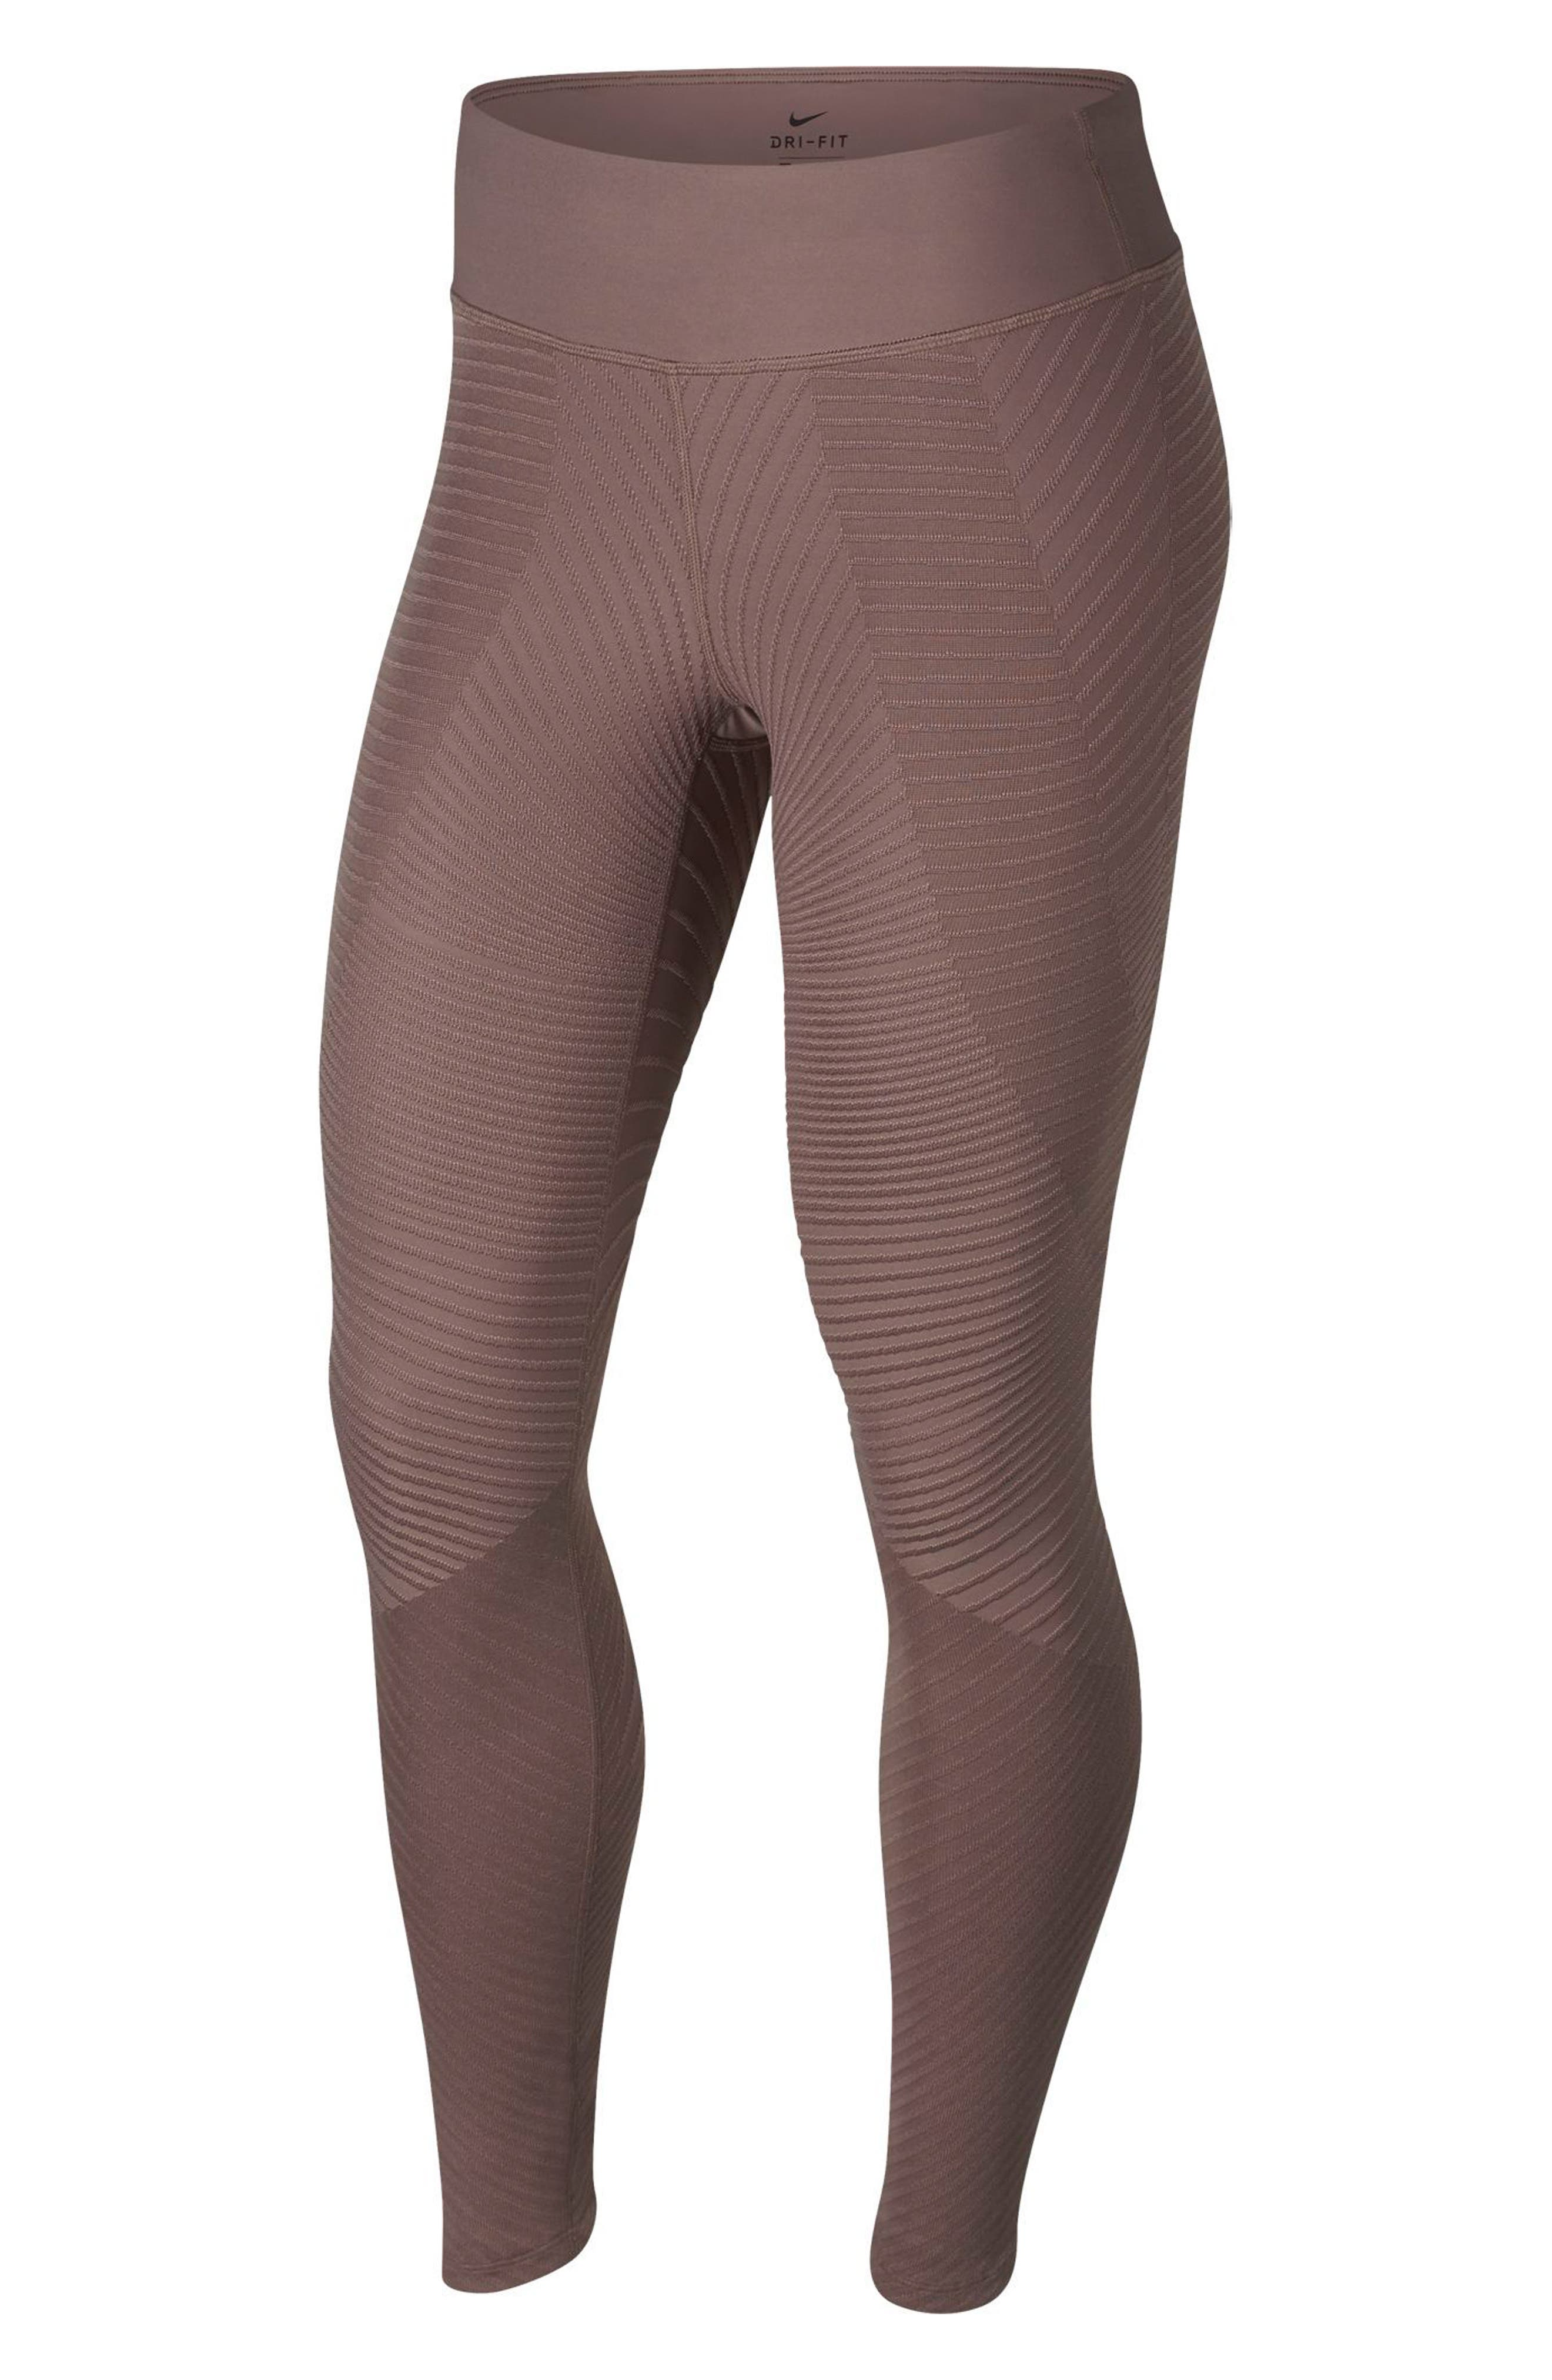 Epic Lux Running Tights,                         Main,                         color, SMOKEY MAUVE/ SILVER